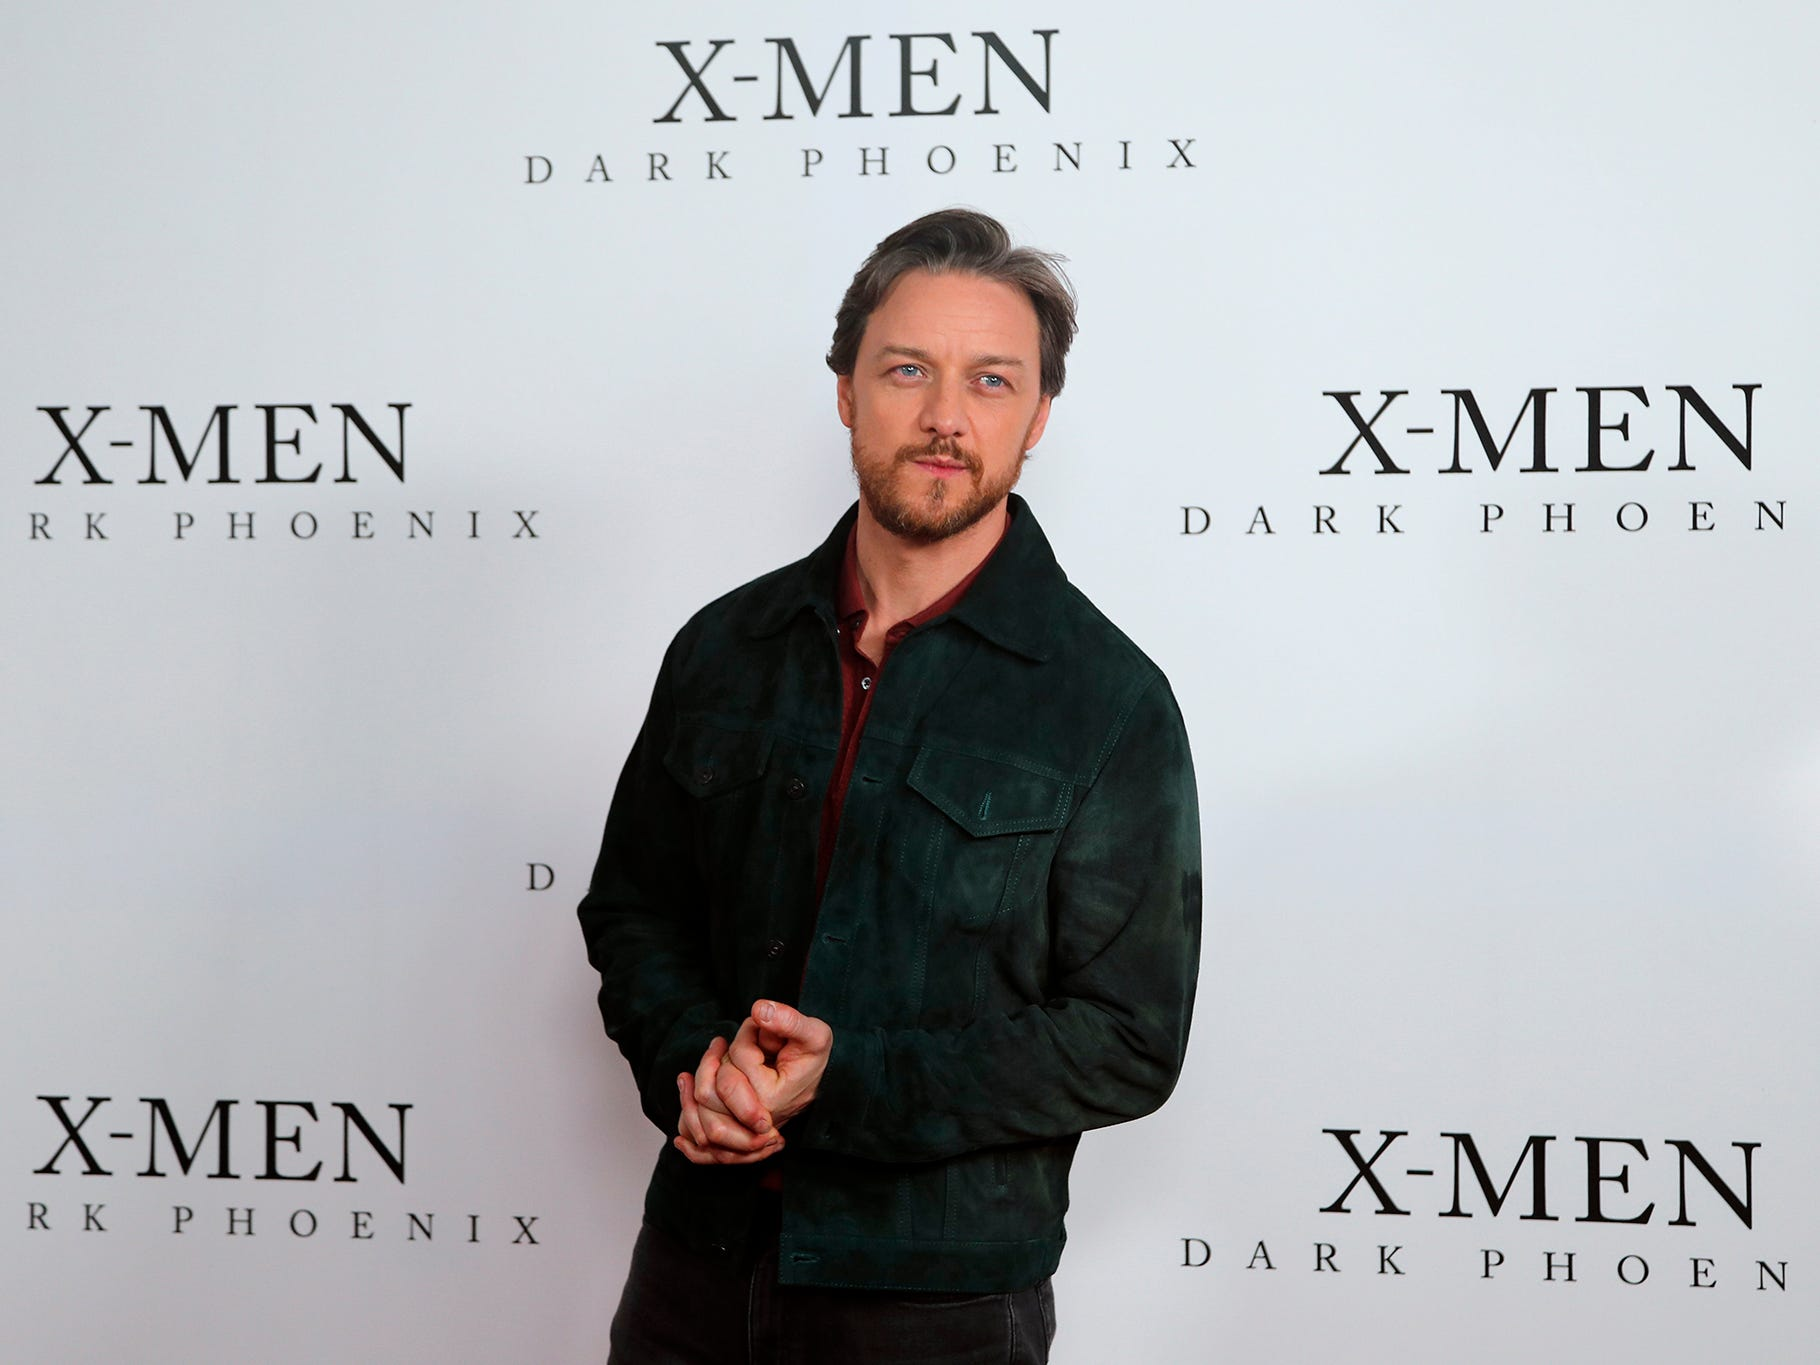 Actor James McAvoy poses as he arrives for an exclusive fan event of X-MEN: Dark Phoenix at a movie theater in London, Wednesday, May 22, 2019.